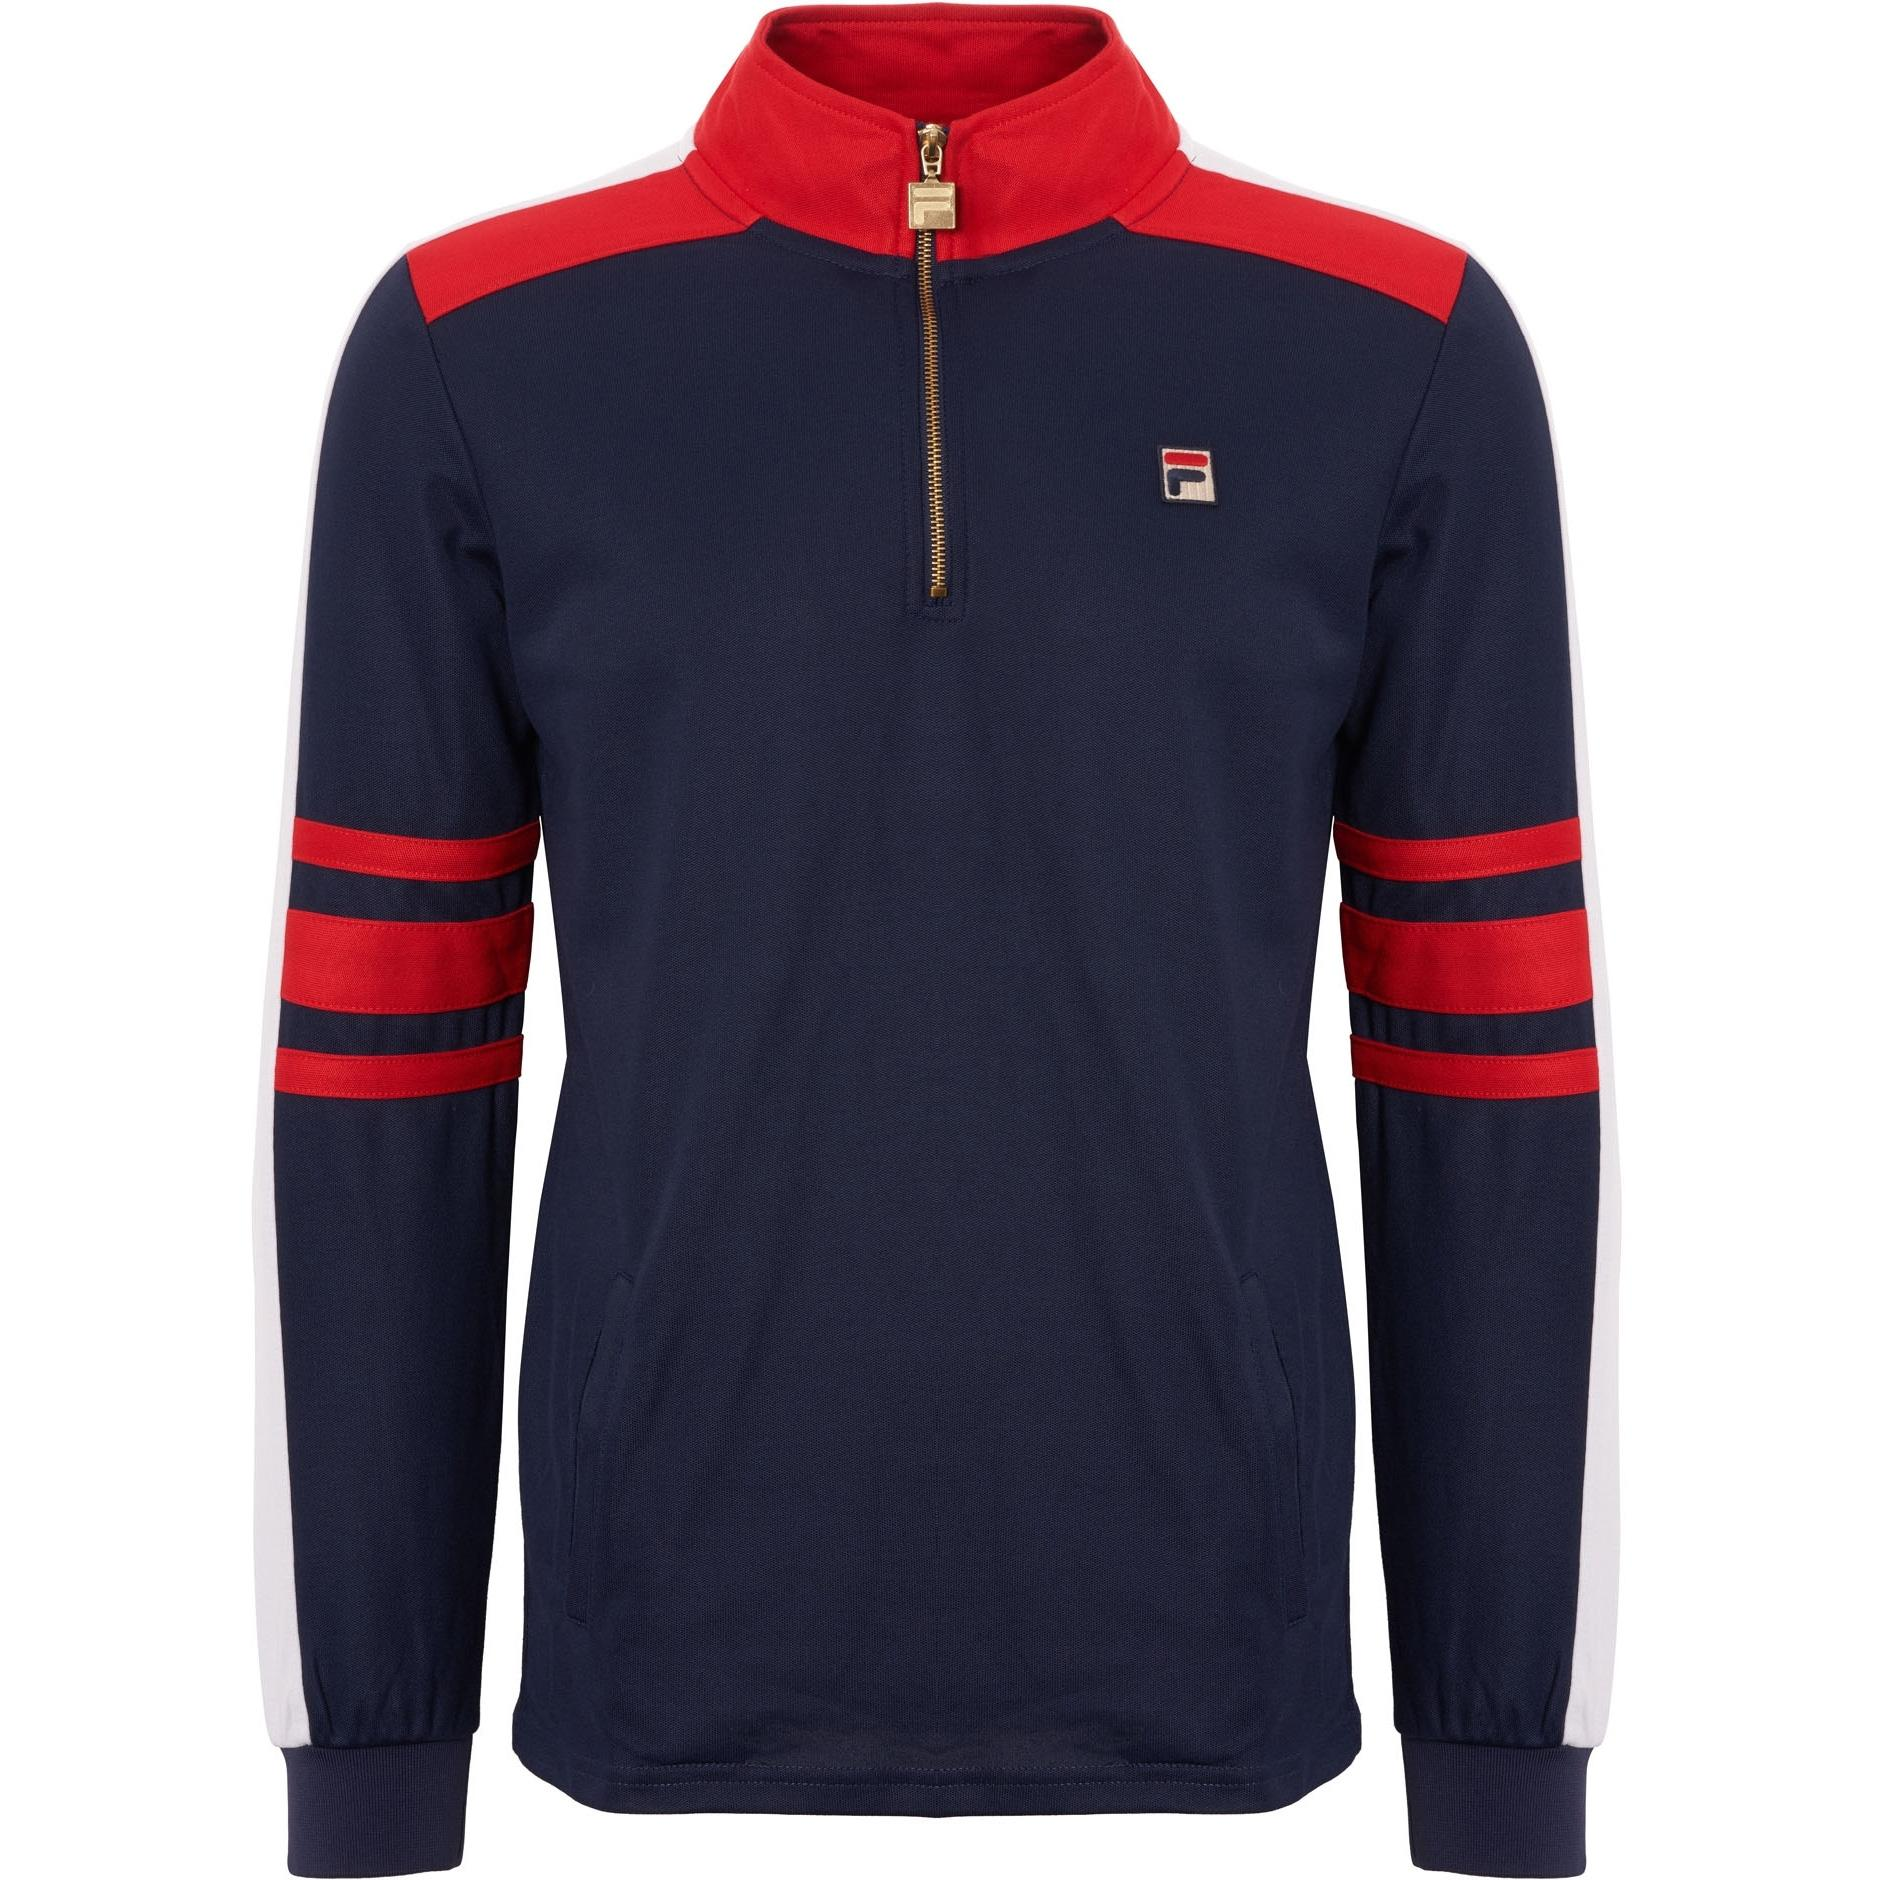 Fila Mens Alastair Vintage Track Top PeacoatChinese Red